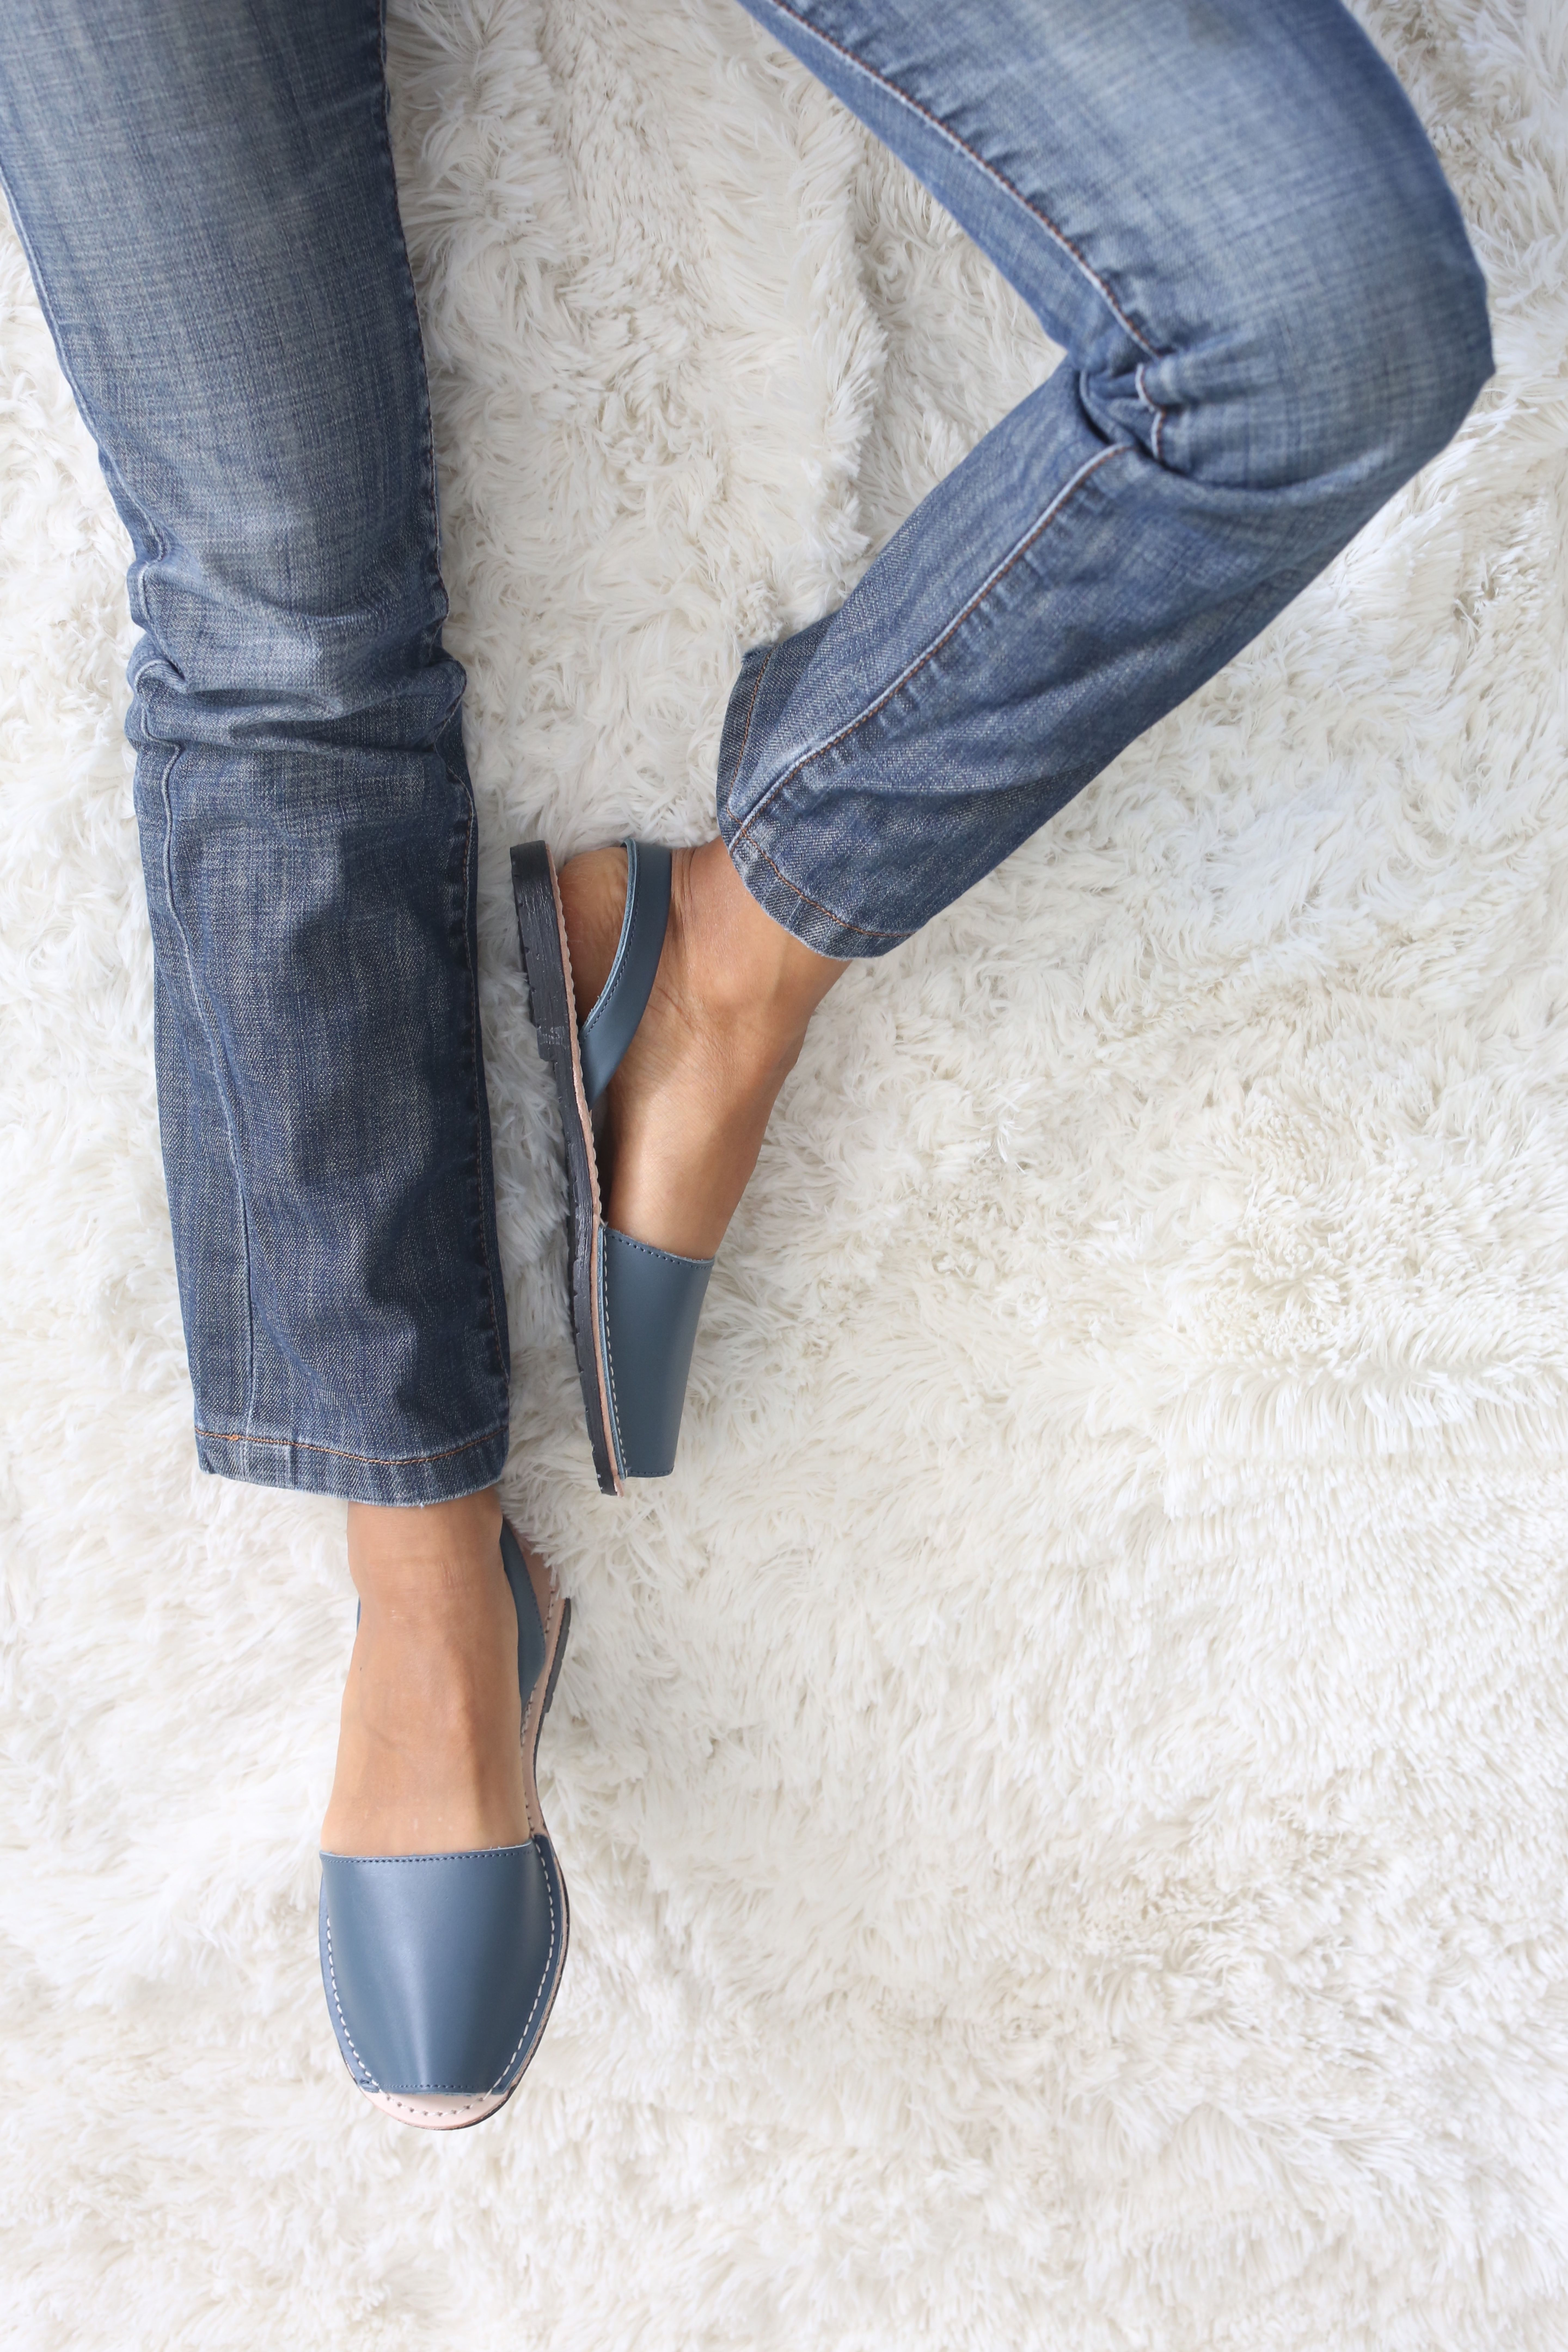 Petrol Blue Sandals Our classic sandals made in petrol blue color that pairs well with jeans. They are  crafted in soft napa leather and the outsoles are made of rubber.